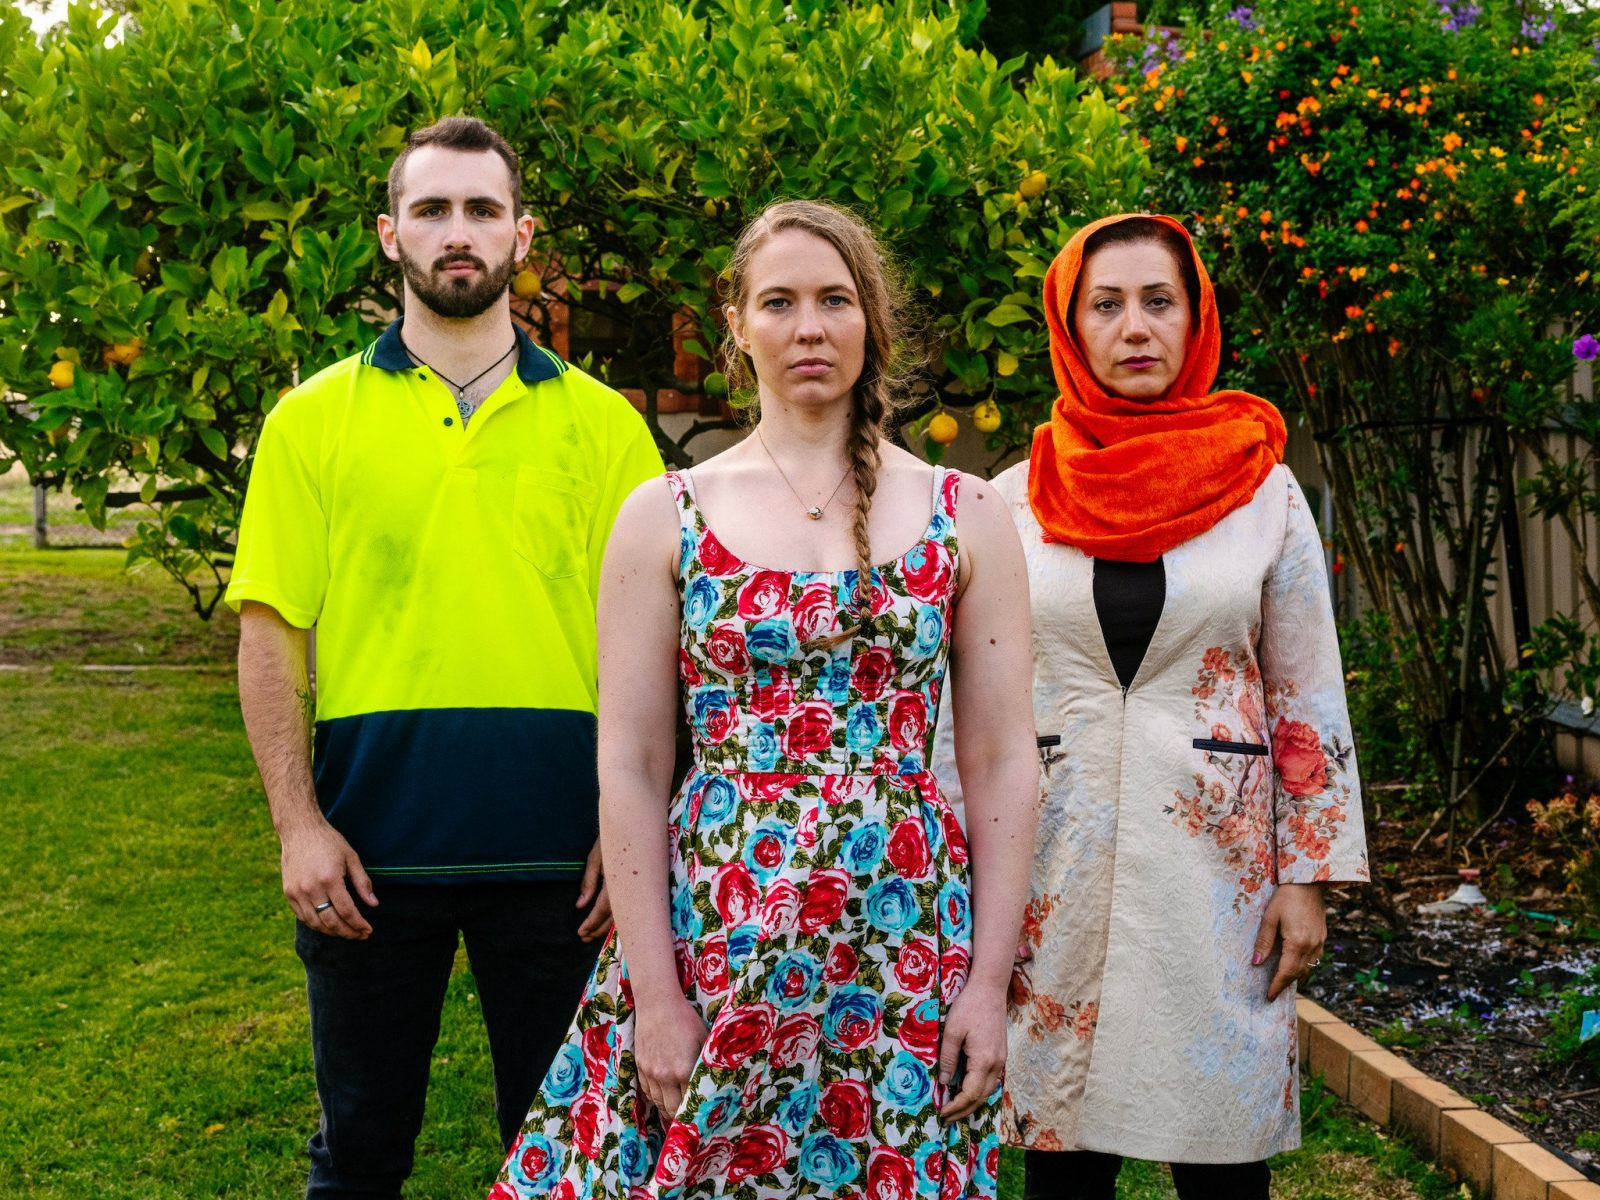 A portrait of man in a high vis shirt, a woman in a floral dress and a woman in an orange headscarf